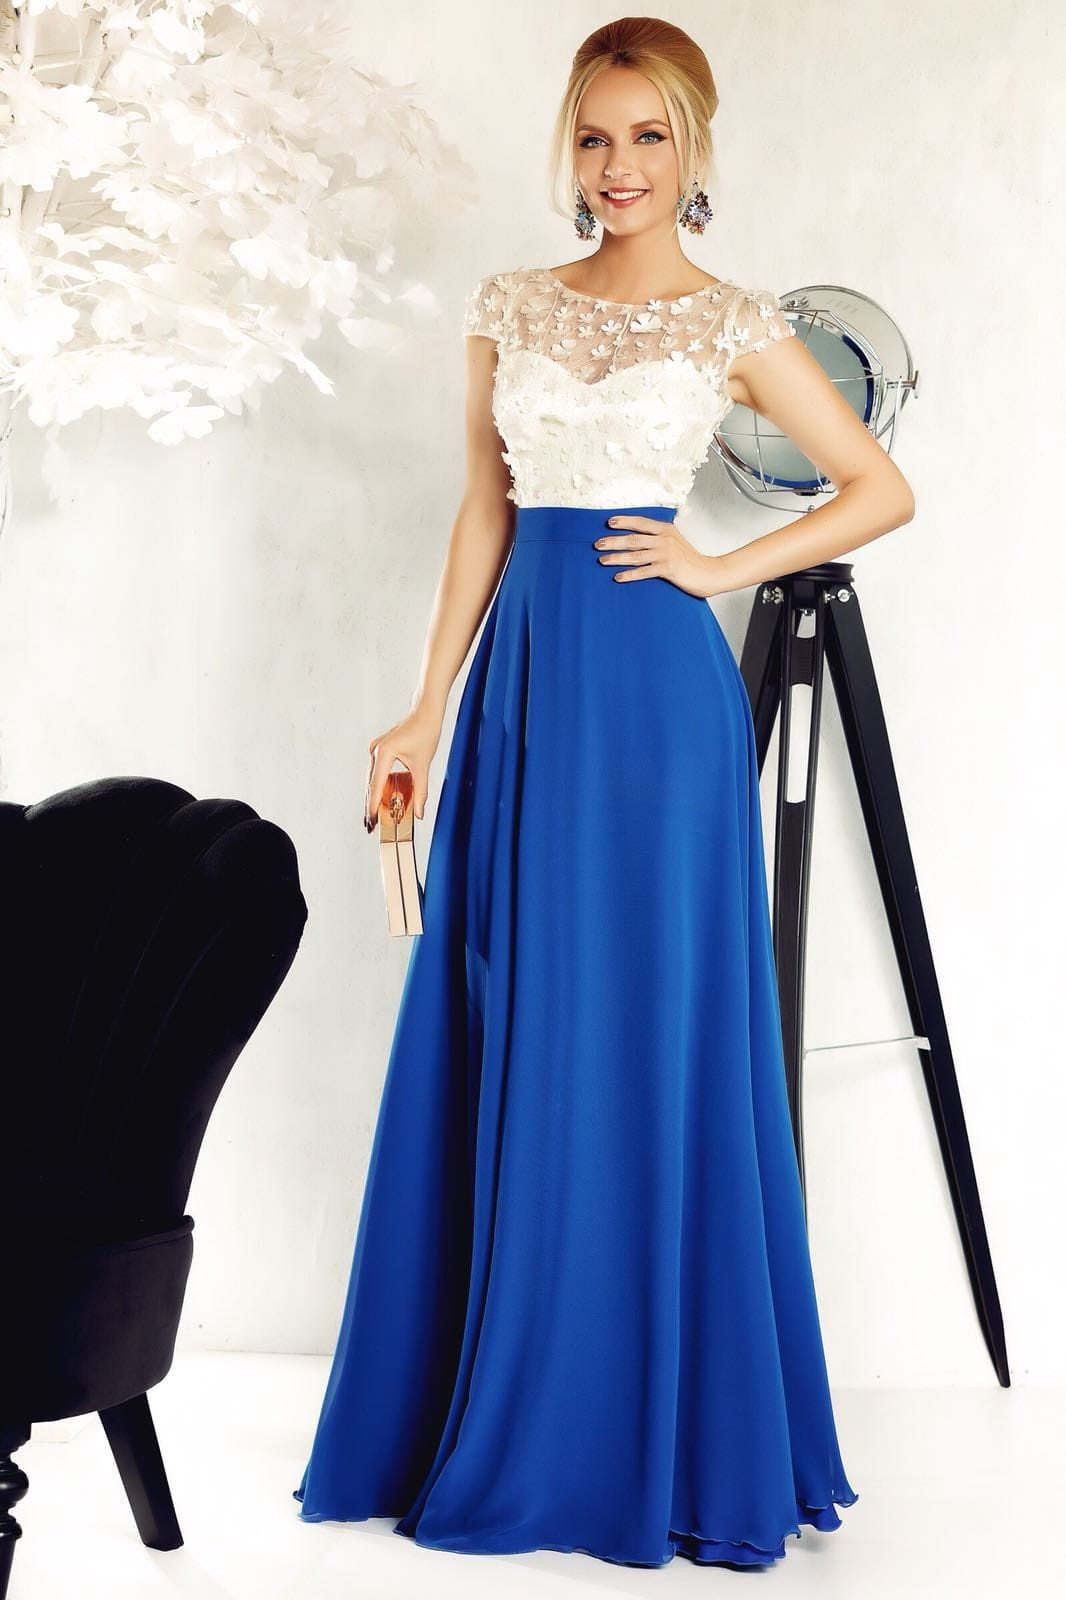 Fofy blue occasional cloche dress from veil fabric with inside lining with floral details with 3d effect